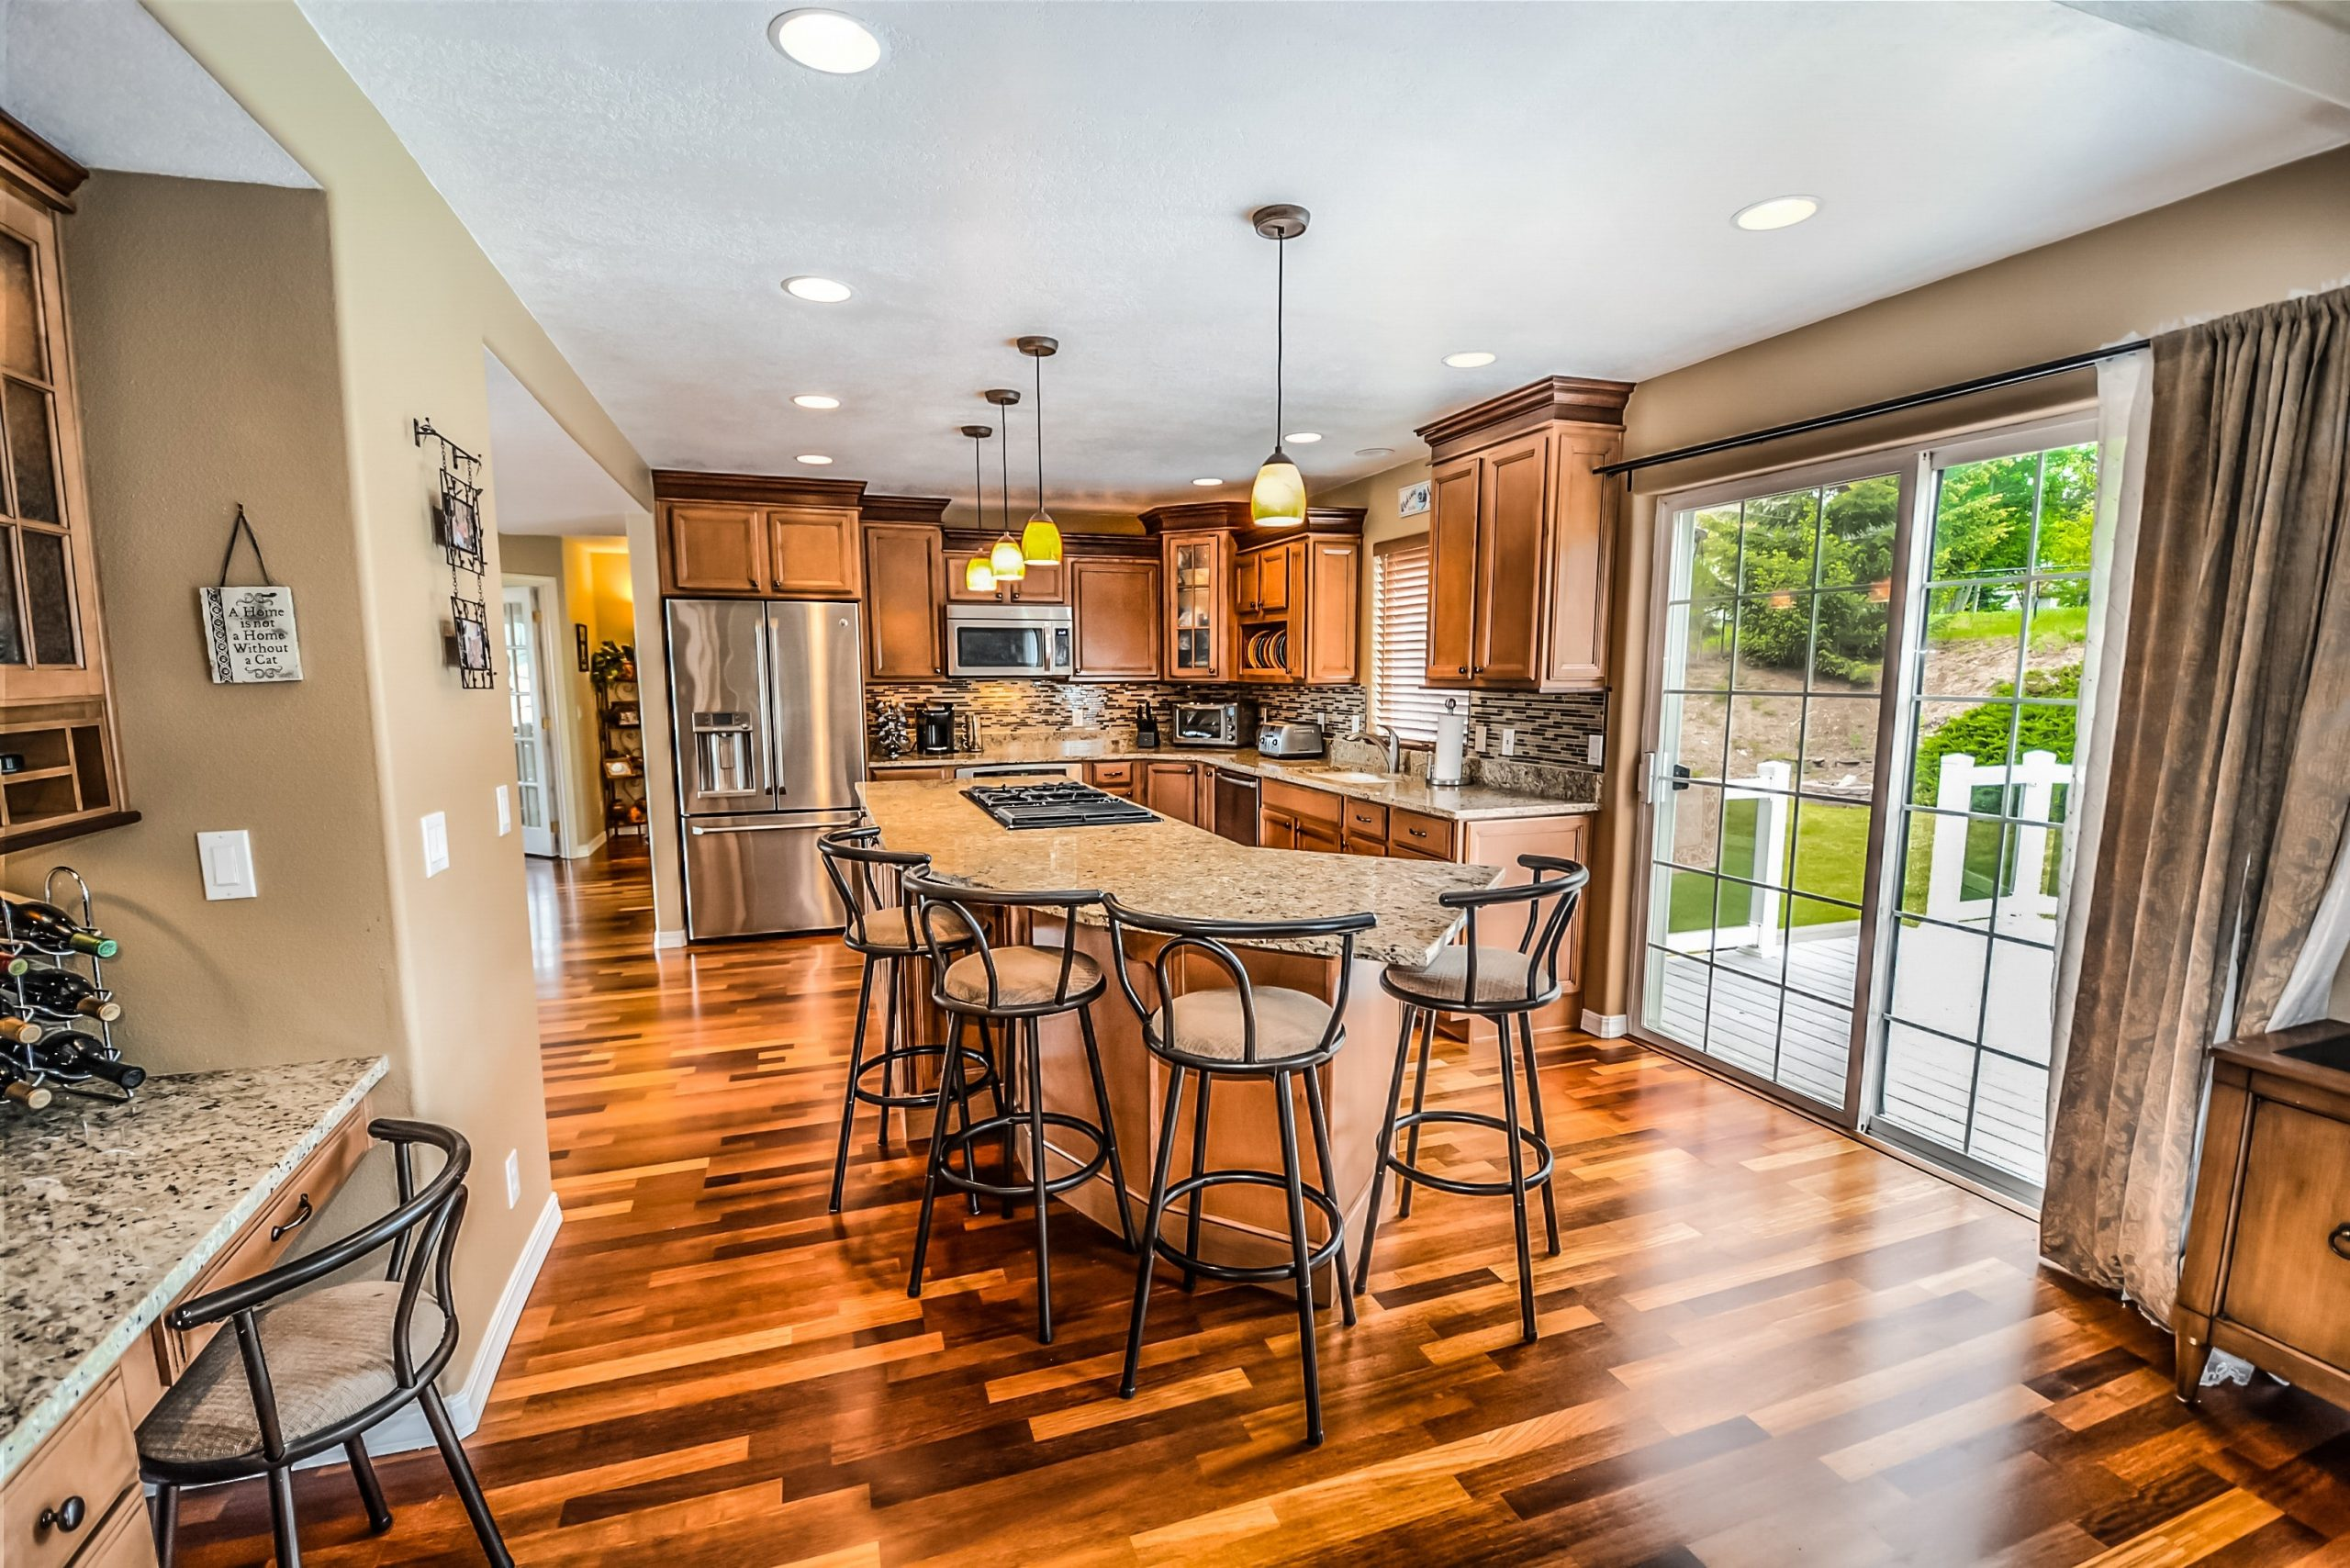 How to Clean your Kitchen like a professional?